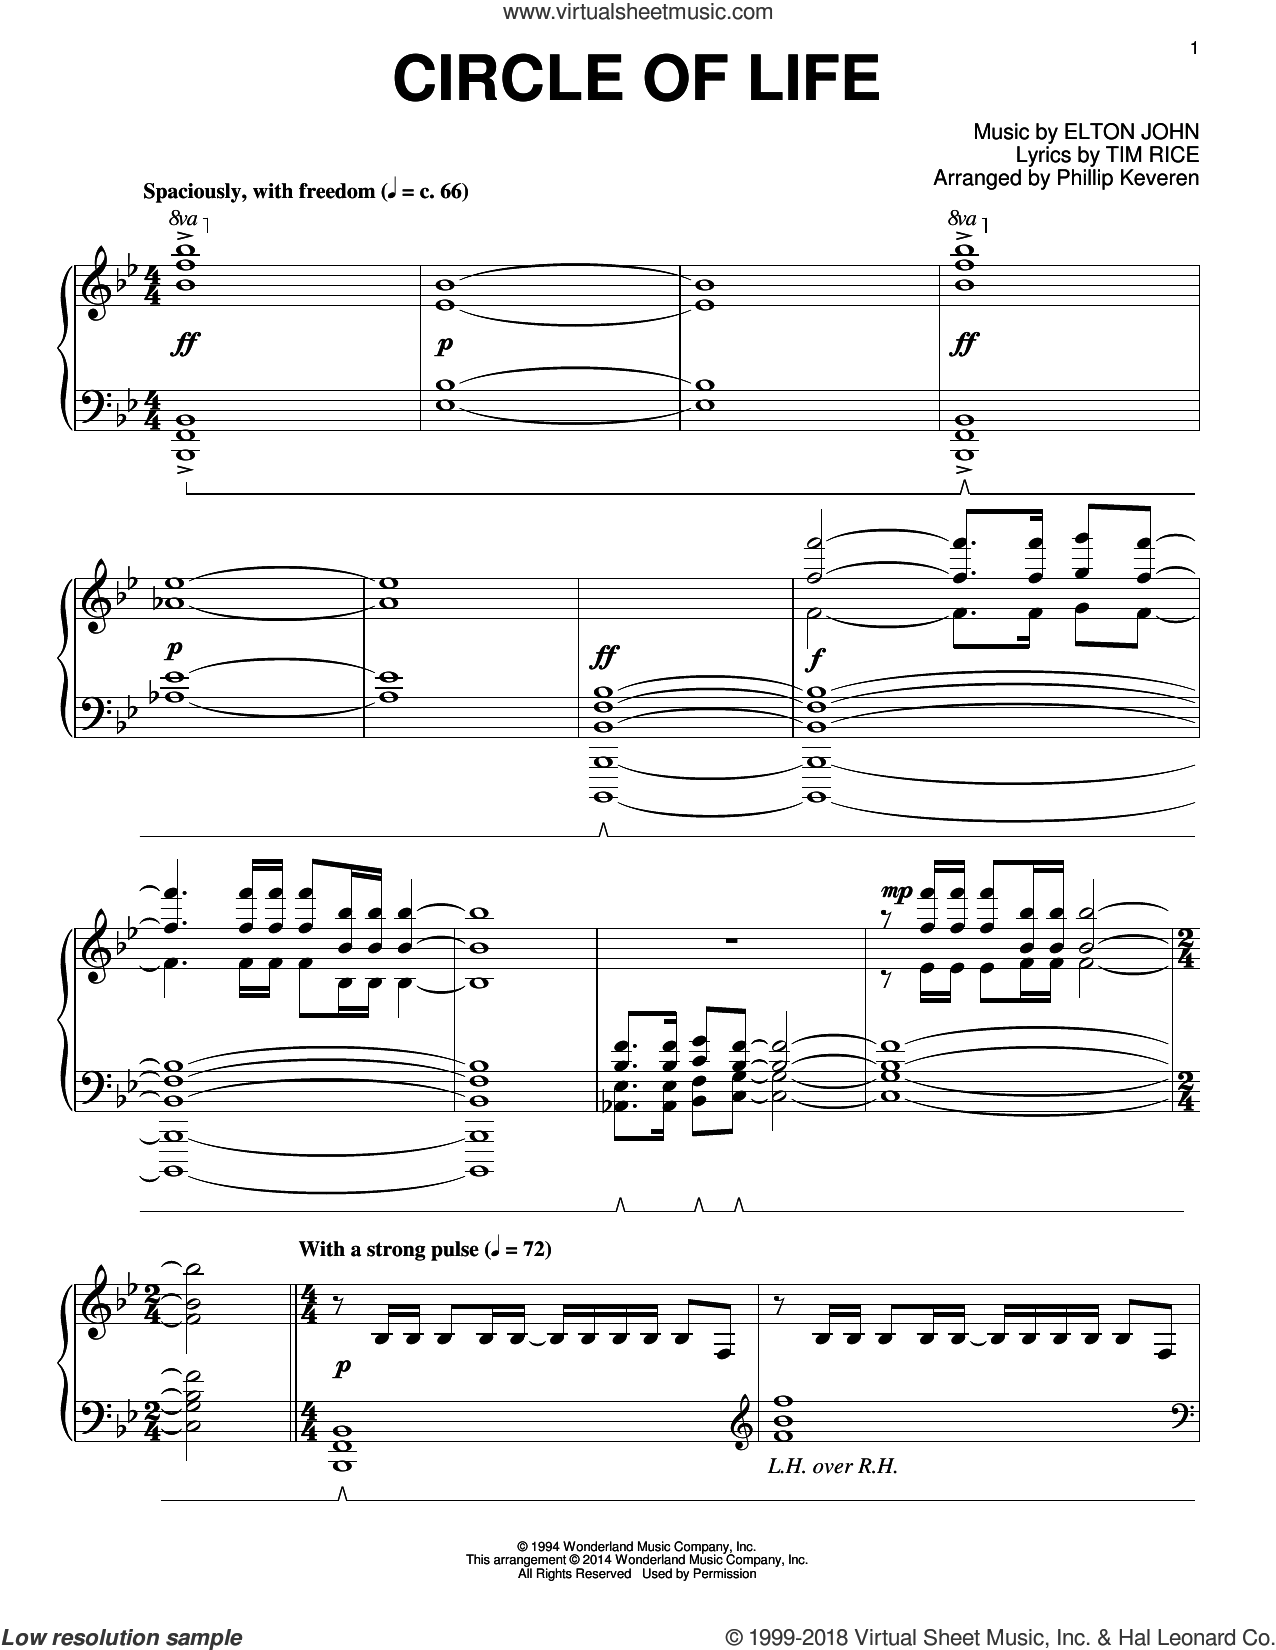 Circle Of Life sheet music for piano solo by Tim Rice